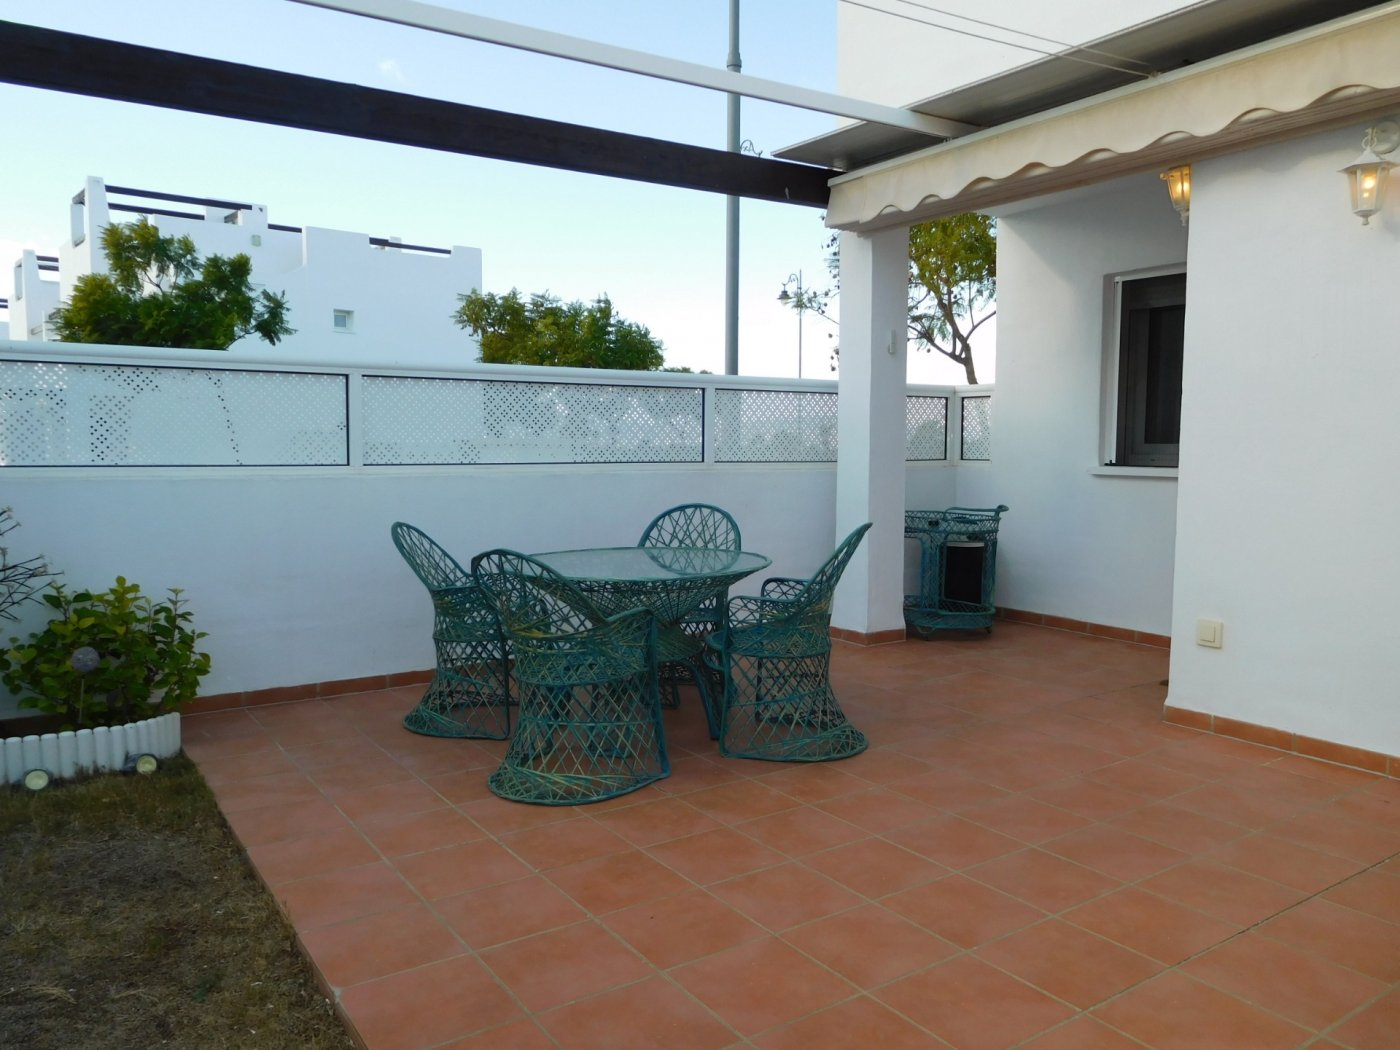 Gallery Image 1 of Flat For rent in Condado De Alhama, Alhama De Murcia With Pool